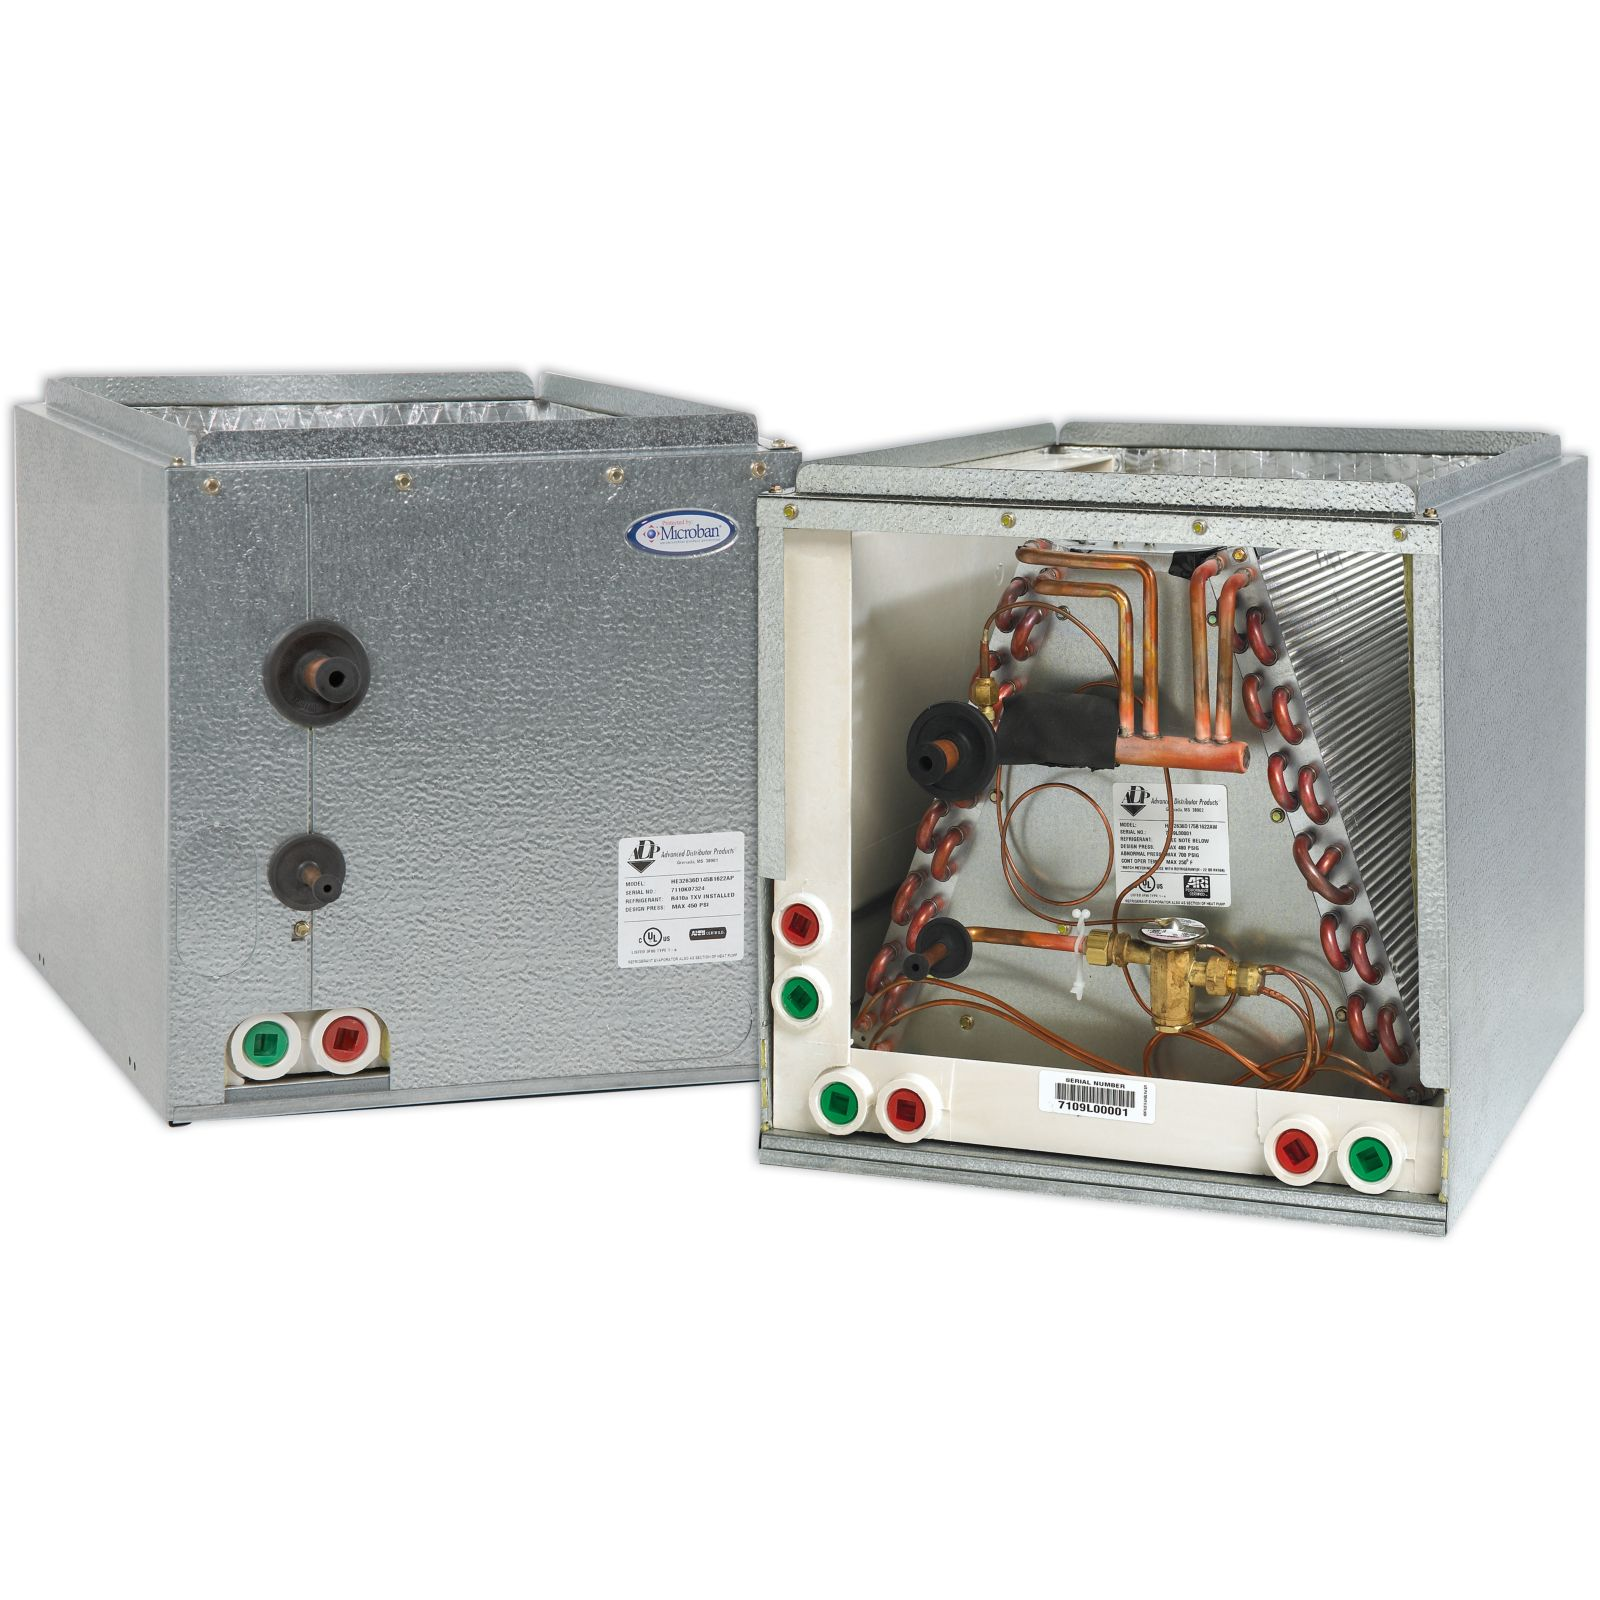 "ADP RE47636E210B2922AP - HE Series Cased Evaporator Coil 3 Ton Copper Left Hand Multi-Position, R410A, 21.5"" X 21"" X 29.5"""